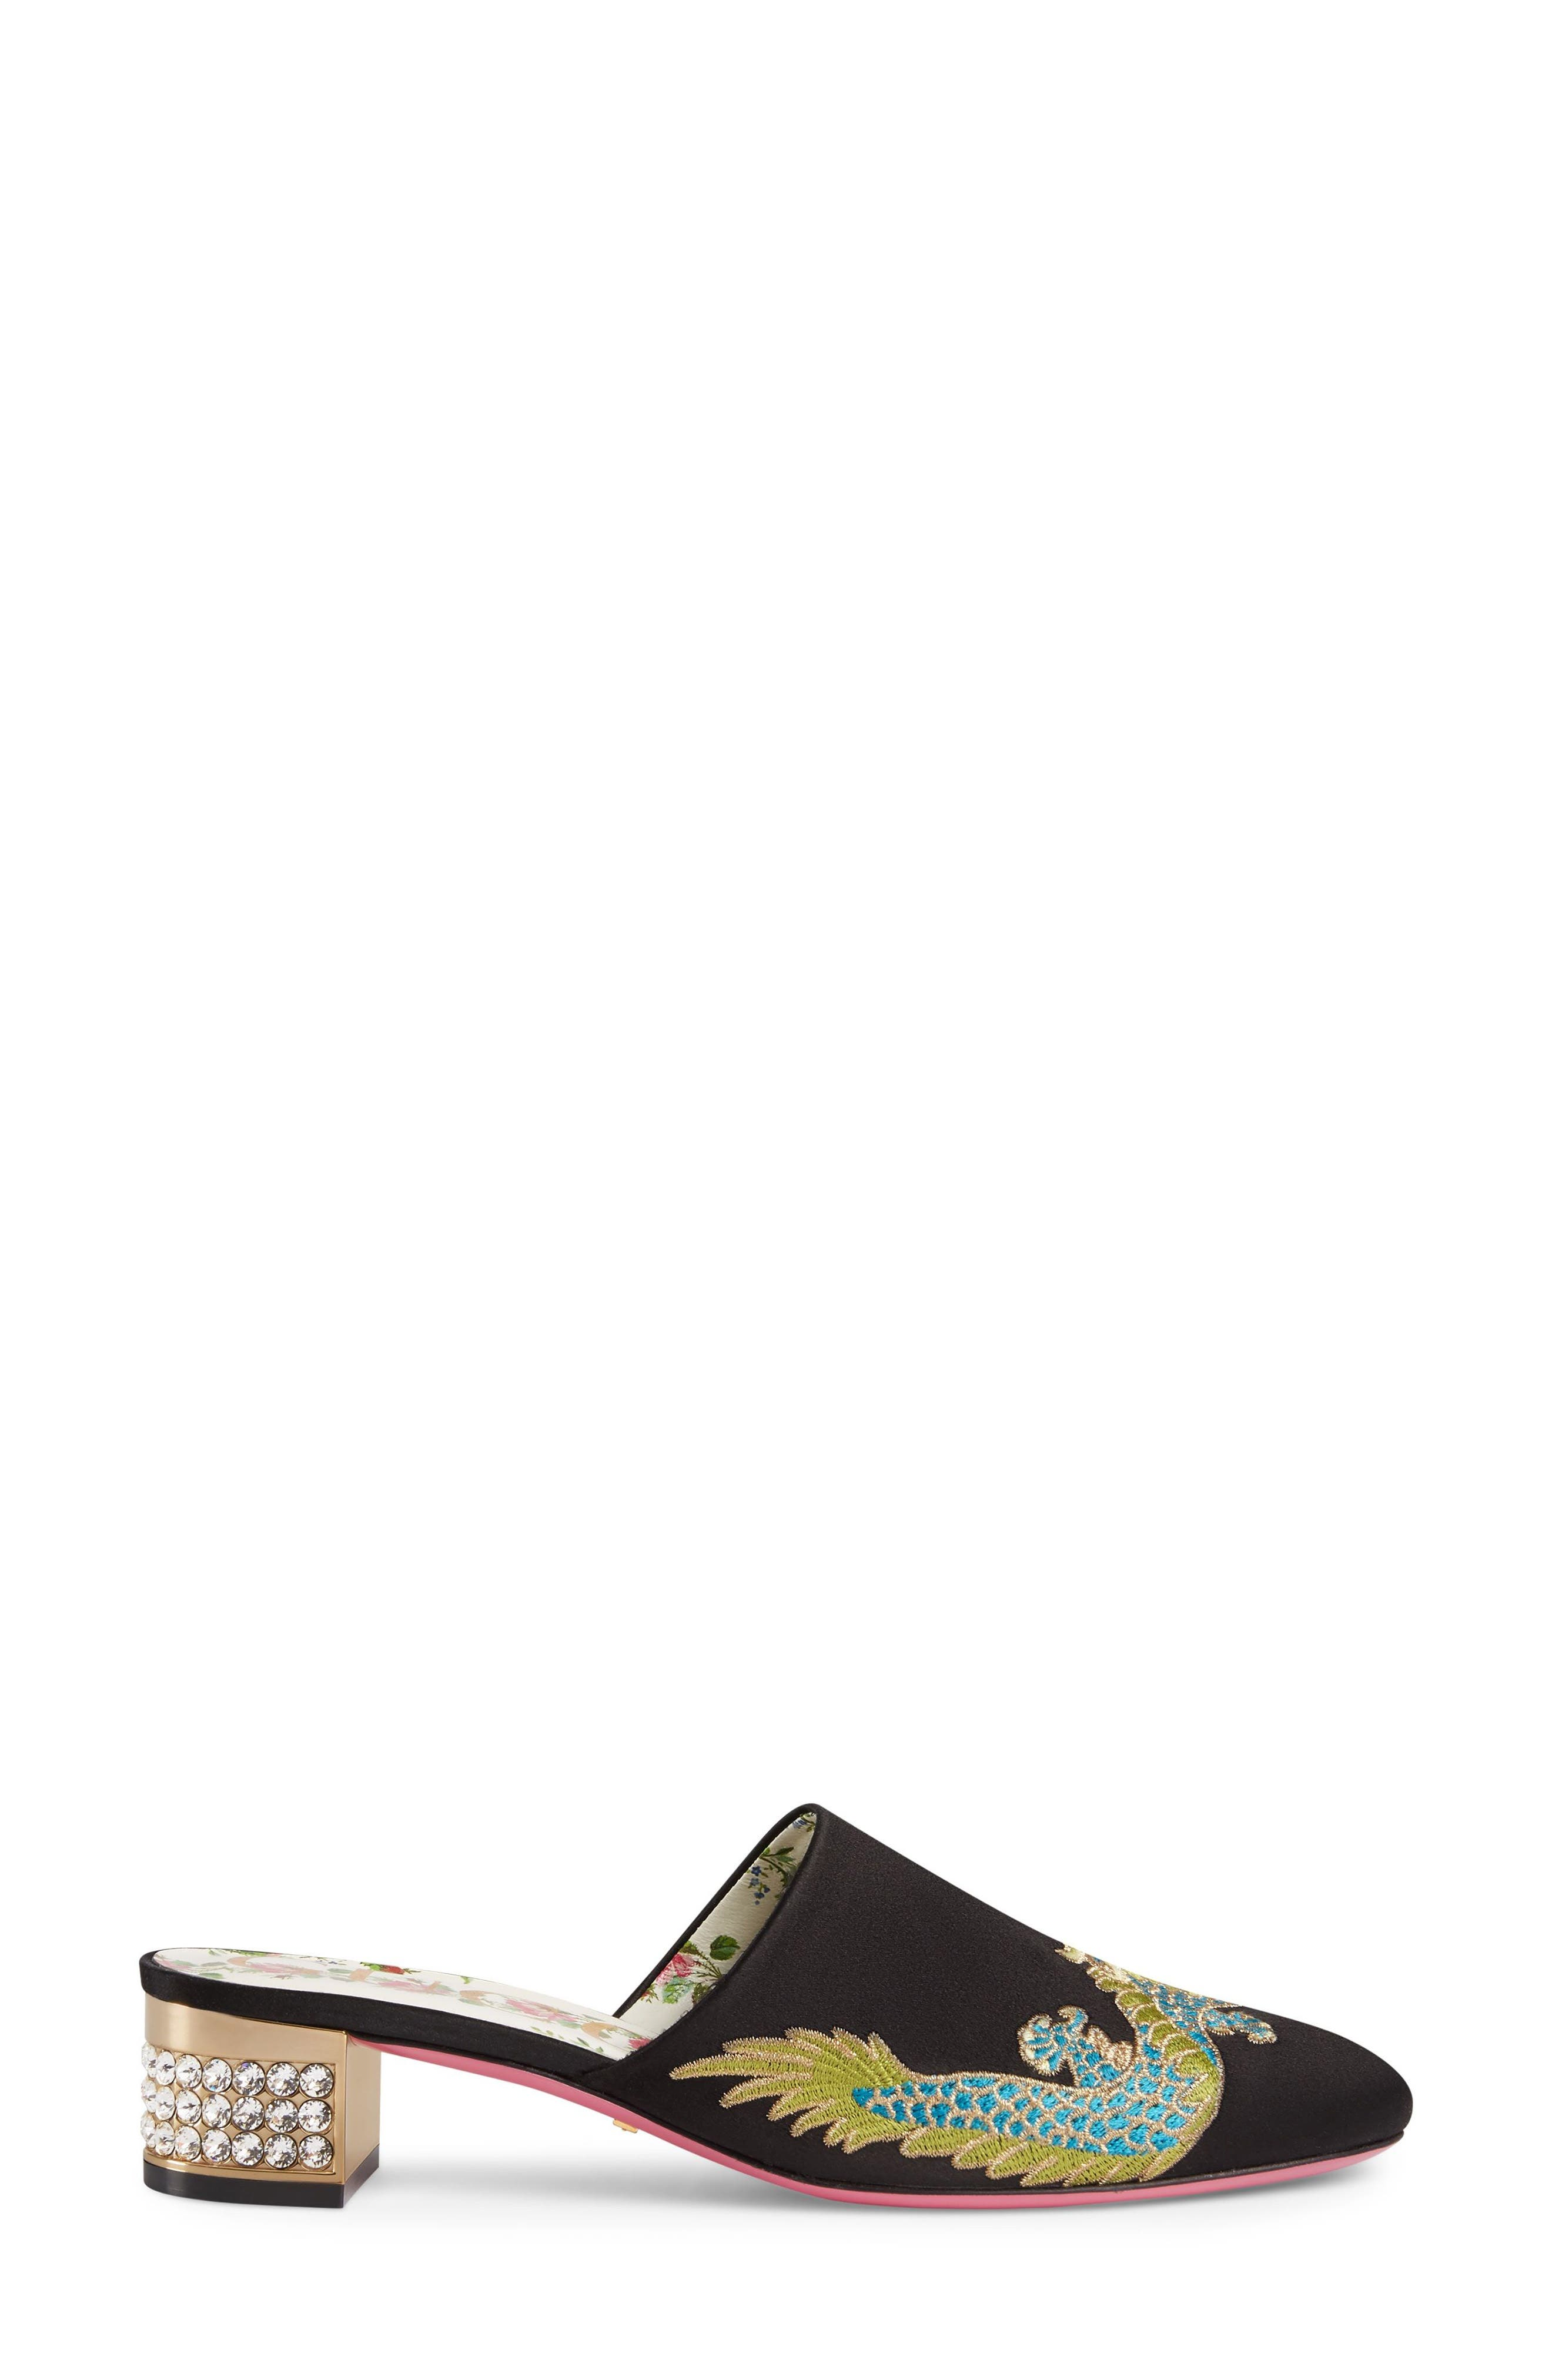 GUCCI,                             Candy Crystal Embellished Mule,                             Alternate thumbnail 3, color,                             001